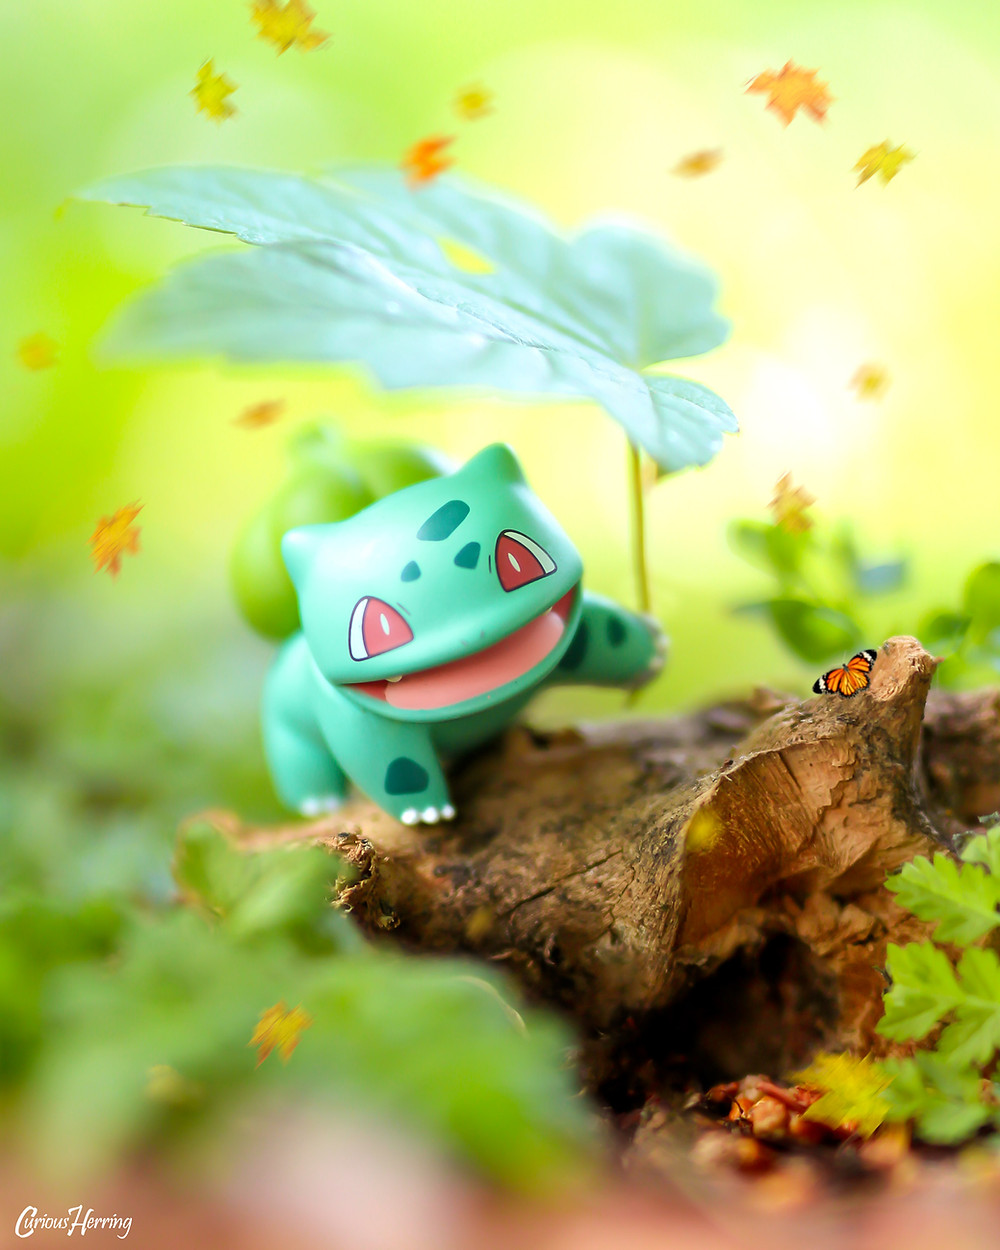 Toy Photography of Bulbasaur from Pokemon. A wild Bulbasaur shades itself from the sun on the woodland floor.